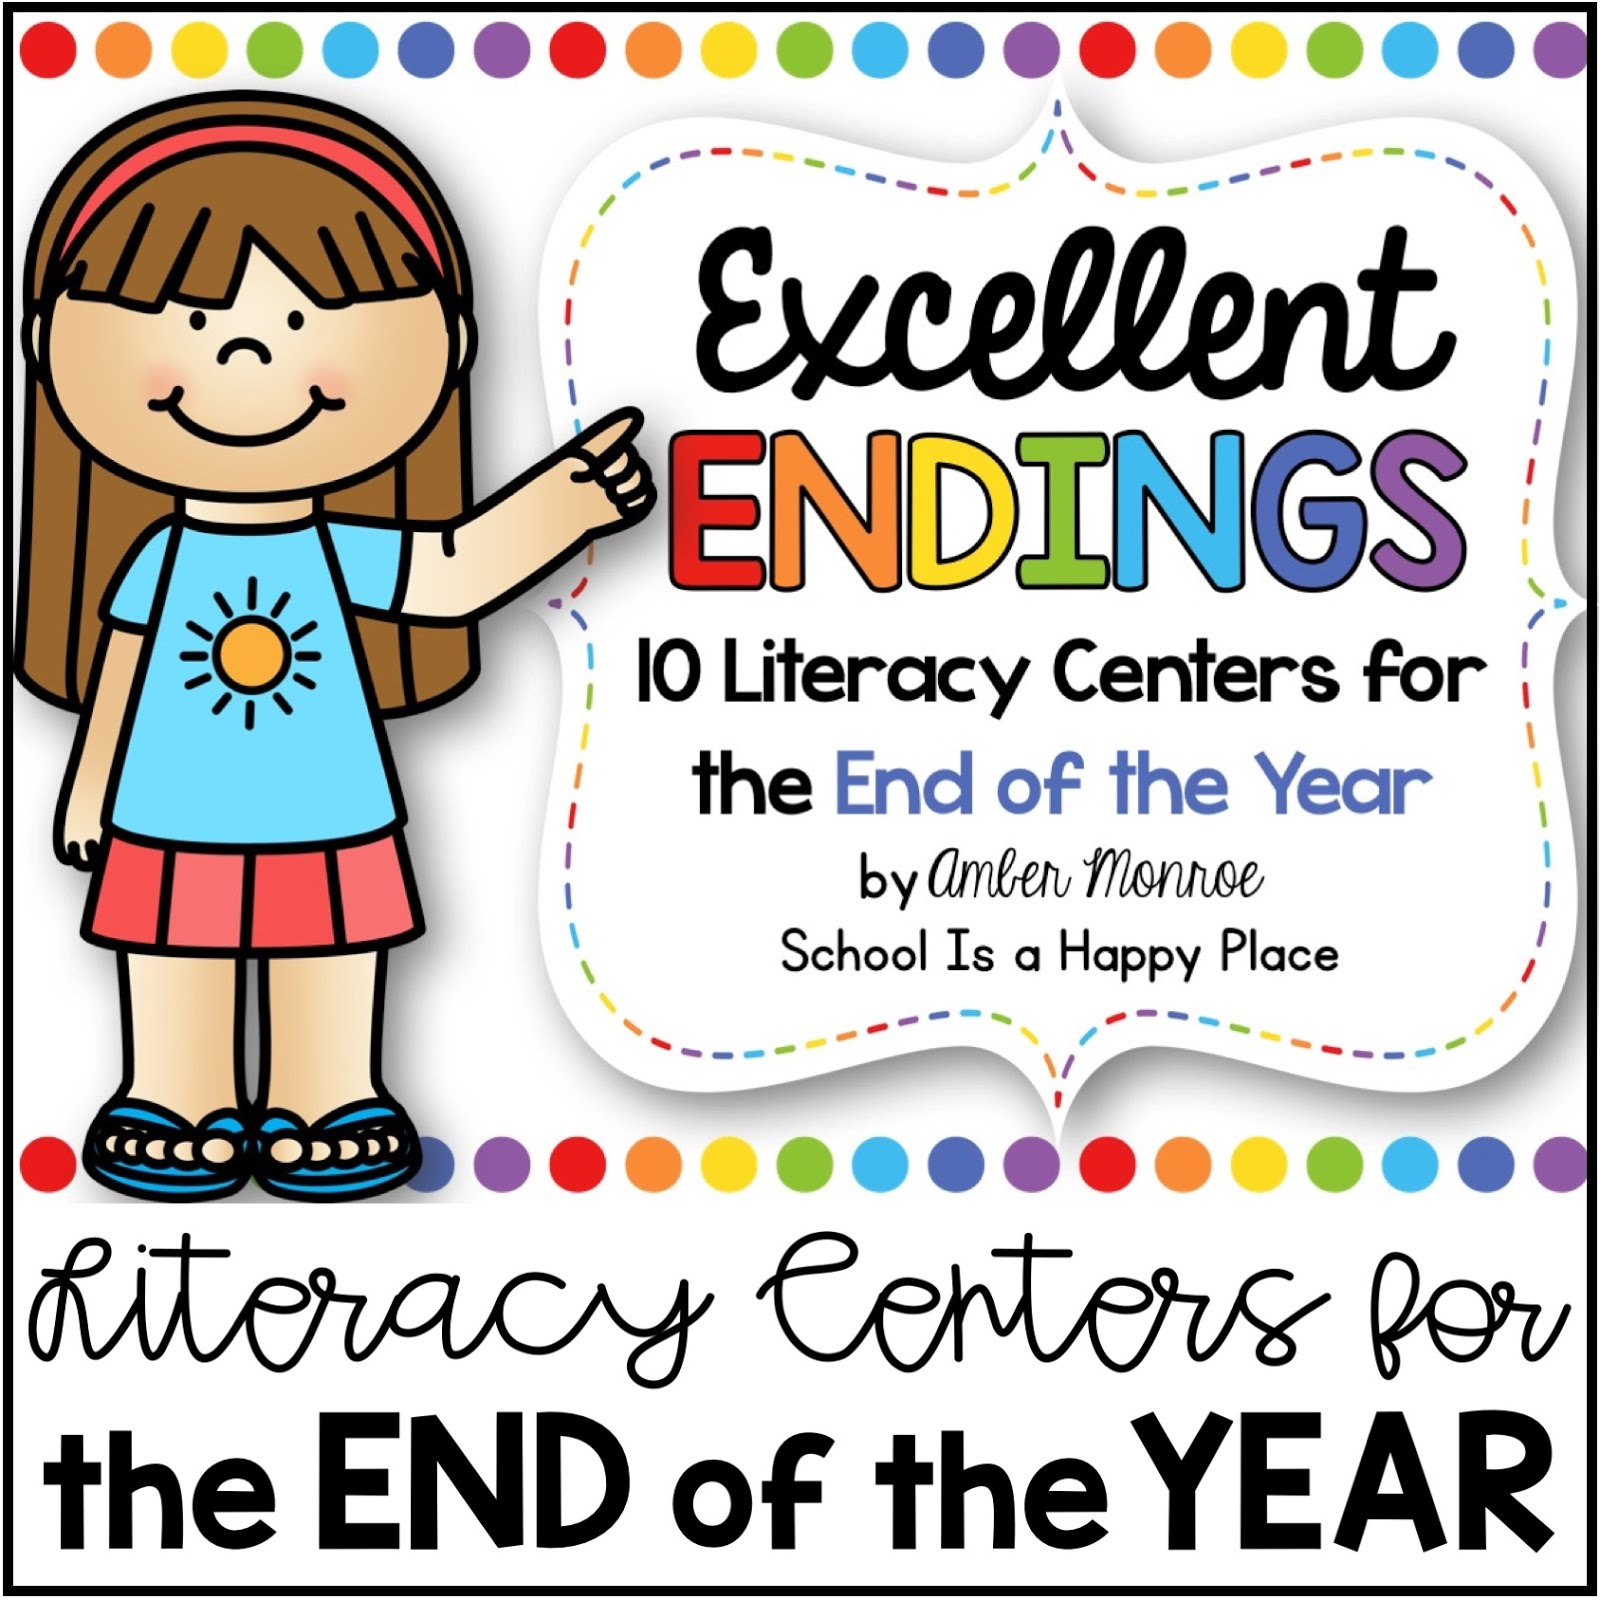 Literacy Centers for the End of the Year